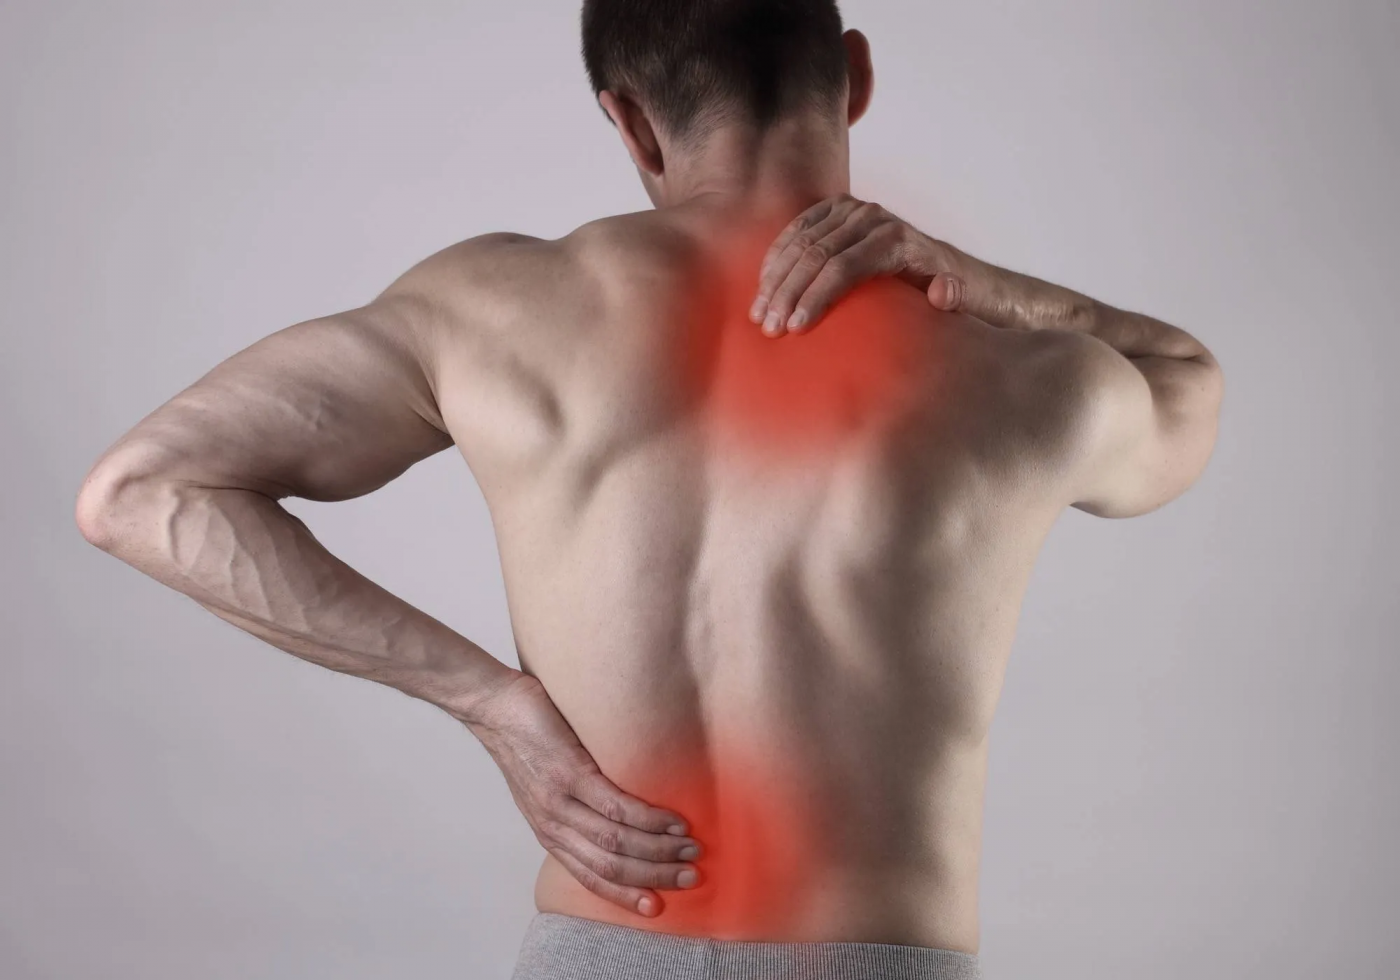 Muscular And Skeletal Pain All That Can Be Done To Get Rid Of It